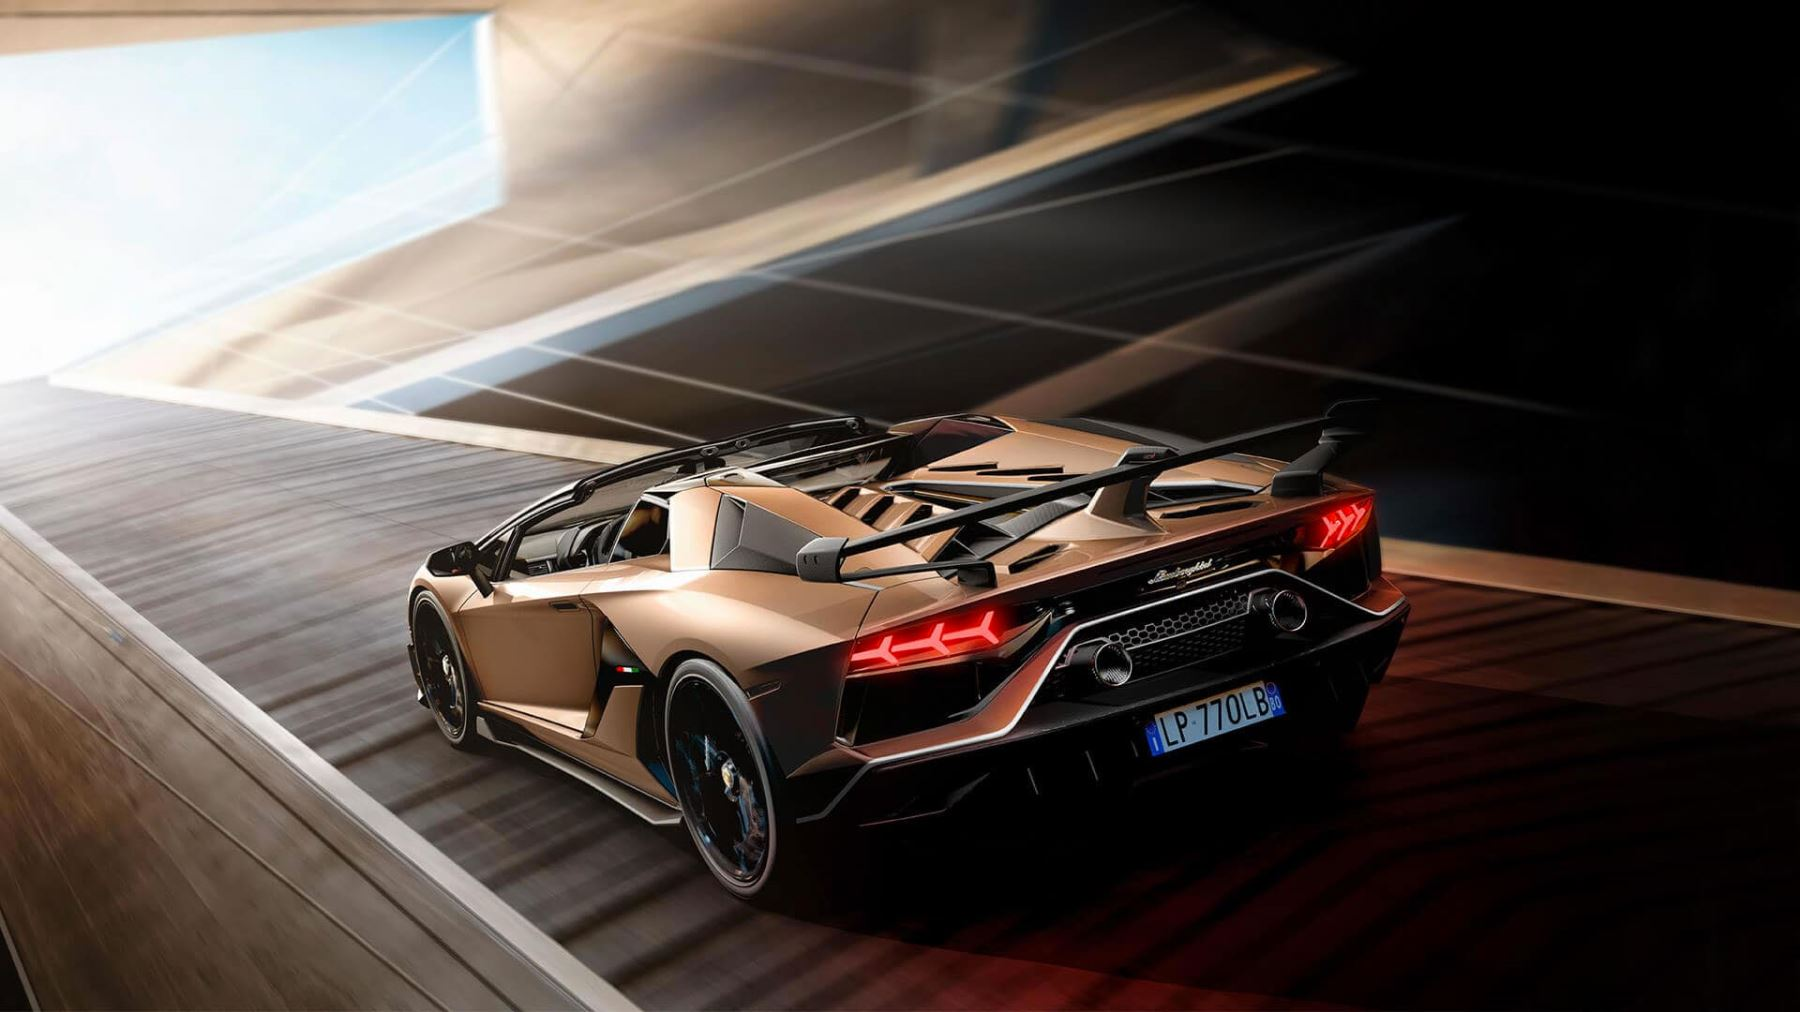 Lamborghini Aventador SVJ Roadster - Real emotions shape the future image 2